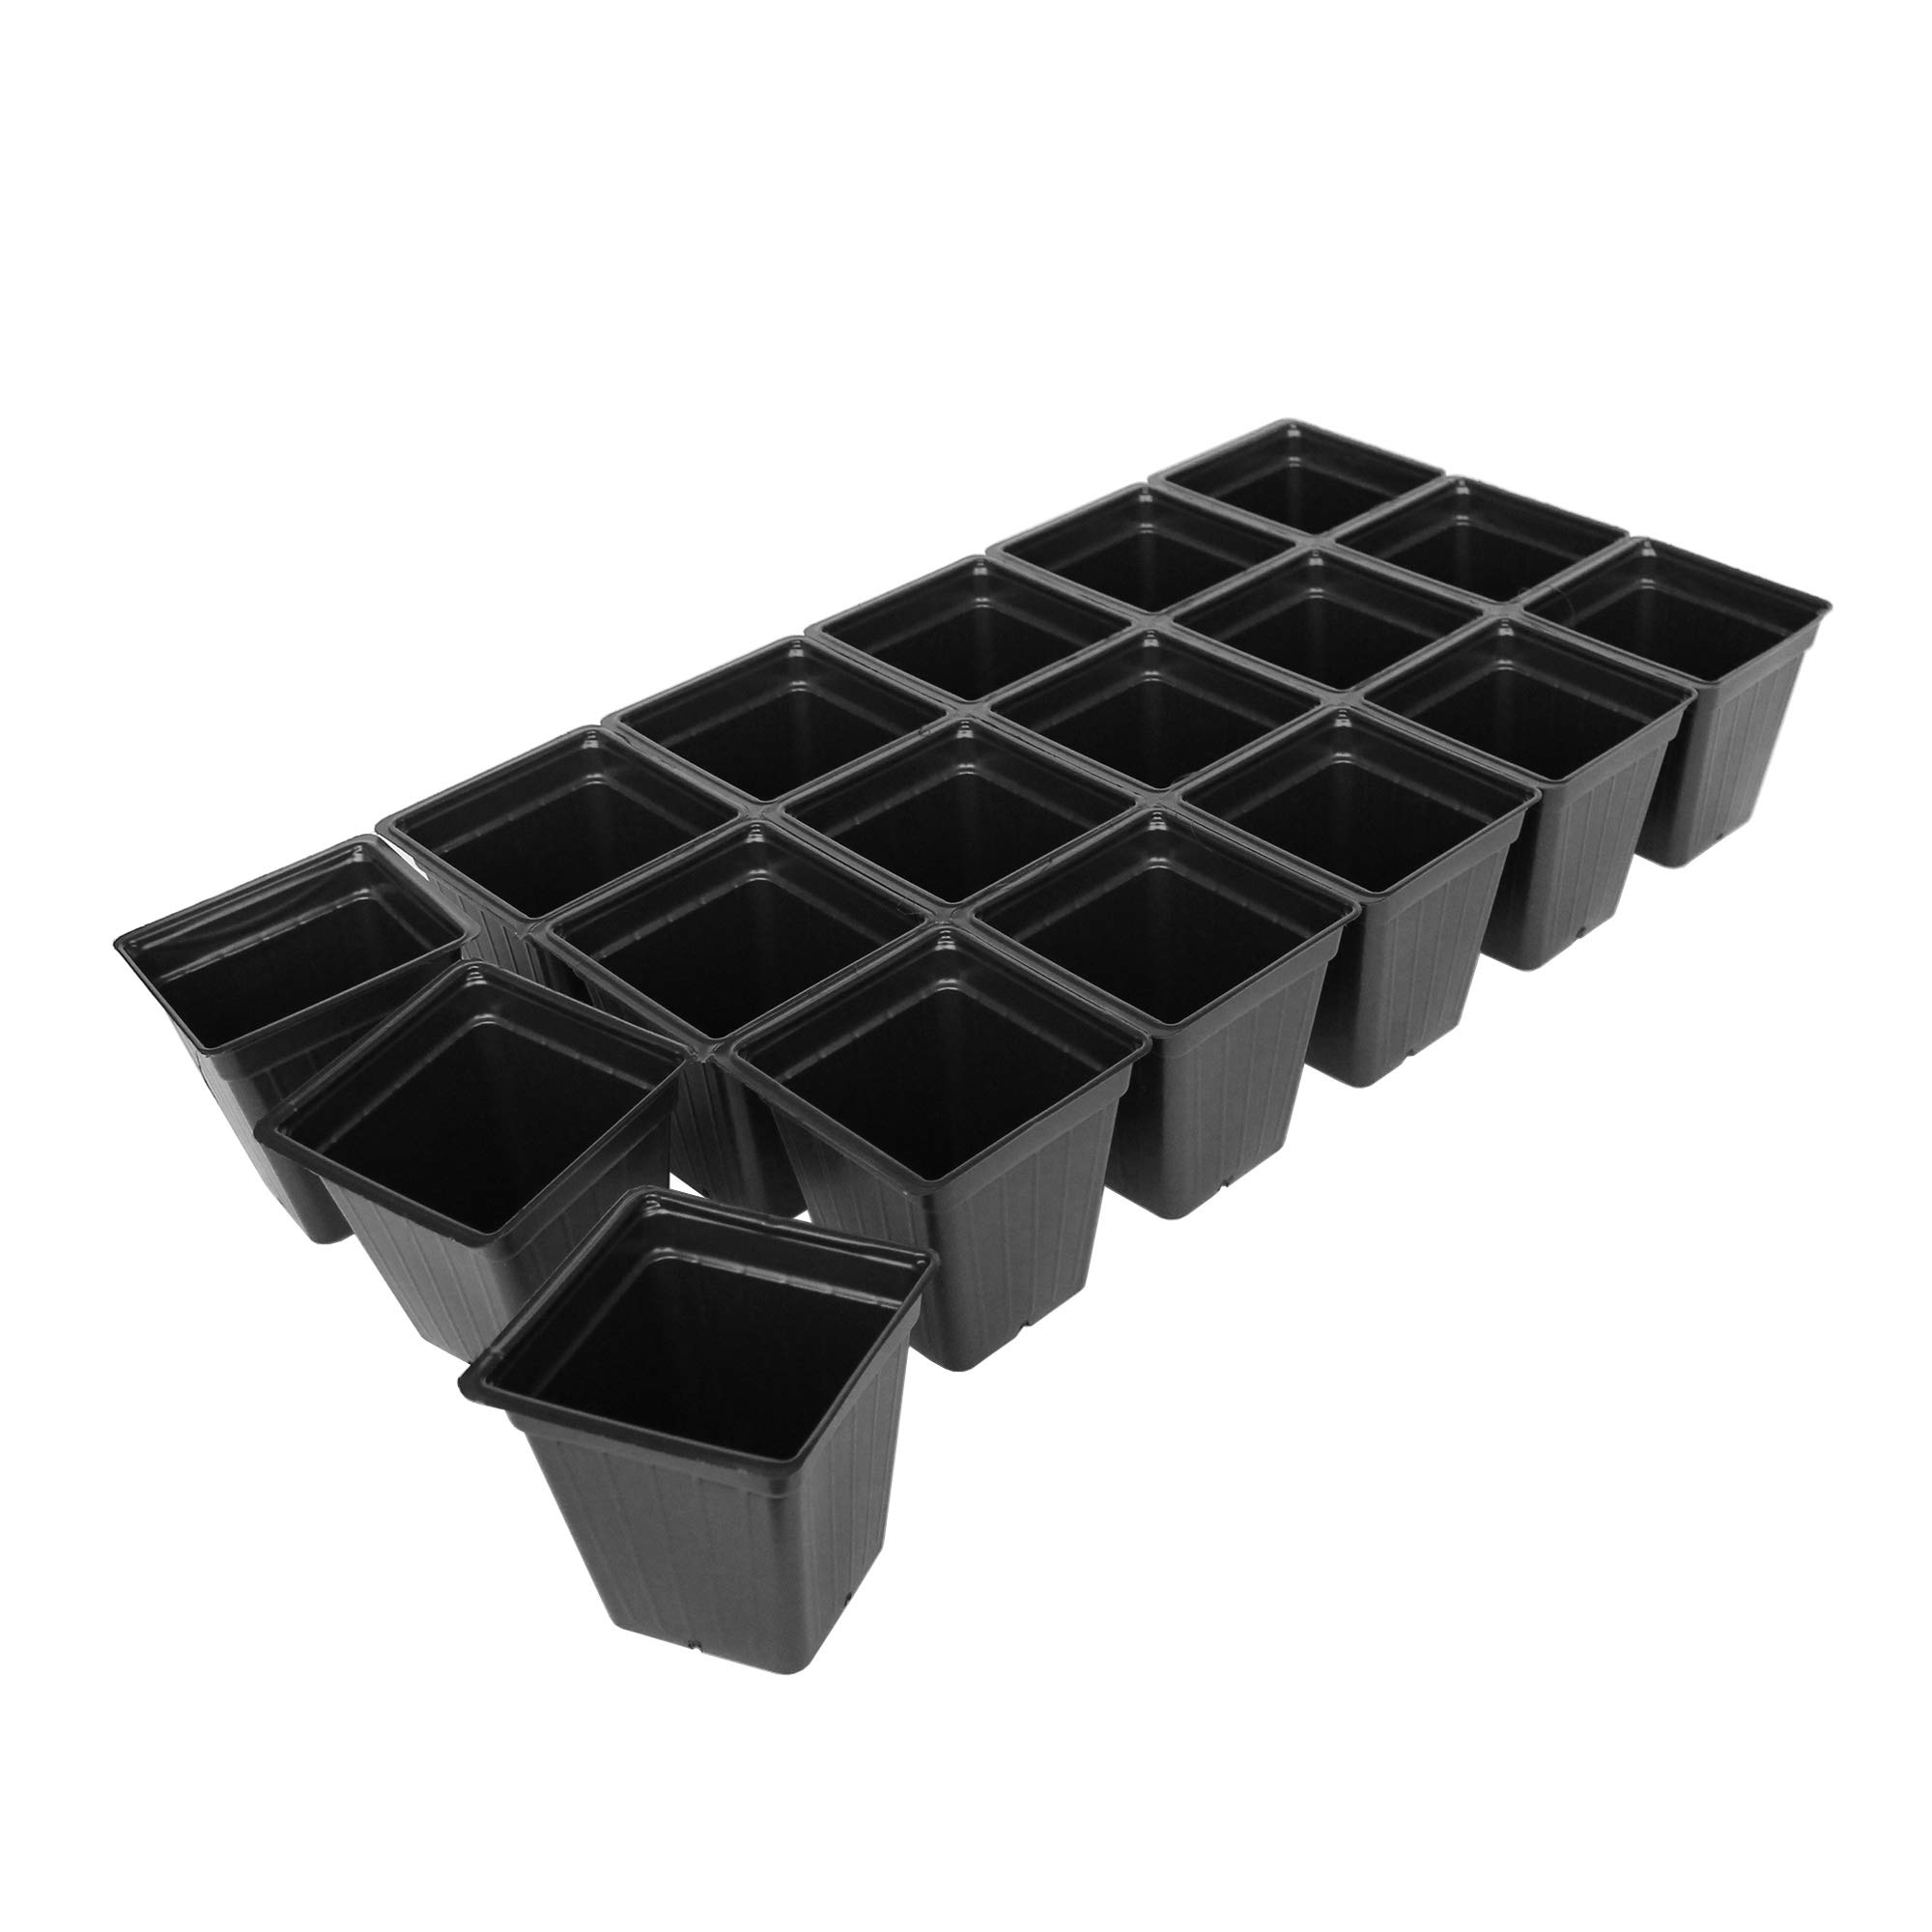 Handy Pantry Black Plastic Garden Tray Inserts - 10 Sheets of 18 Planting Pot Cells Each - 3x6 Configuration - Perforated - Nursery, Greenhouse, Gardening by Handy Pantry